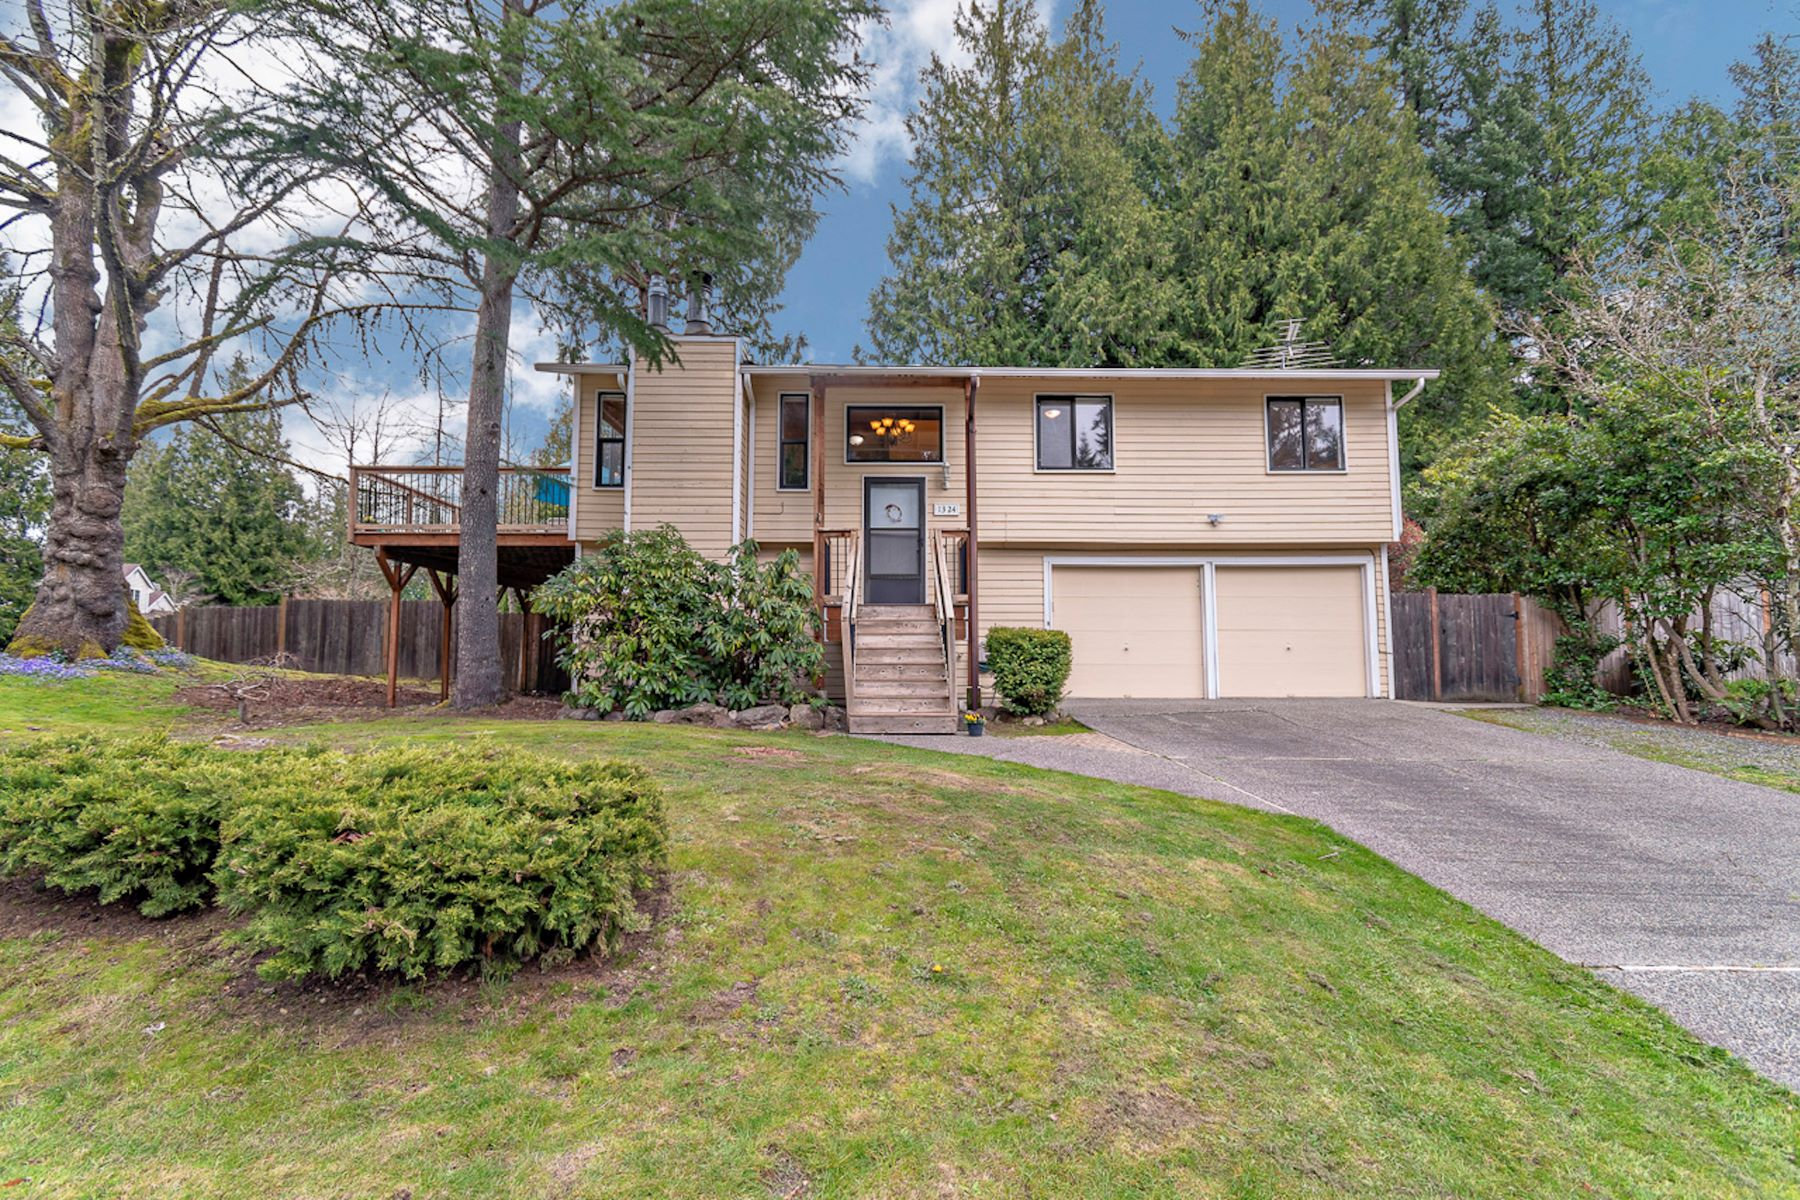 Single Family Homes for Sale at Tranquil Oasis in the Heart of Sammamish 1324 220th Place NE Sammamish, Washington 98074 United States